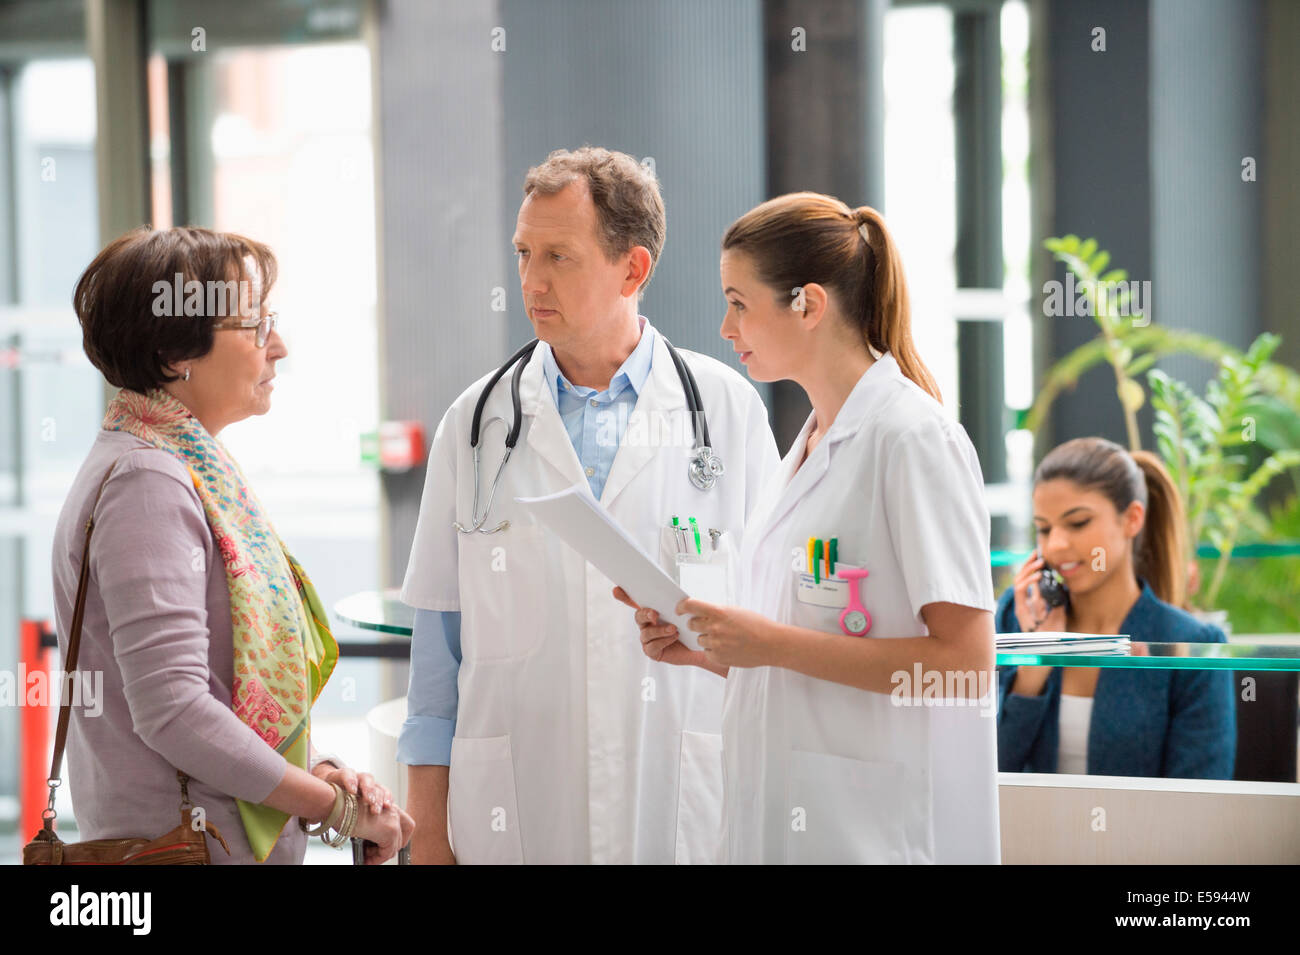 Doctors discussing with female patient at hospital reception desk - Stock Image